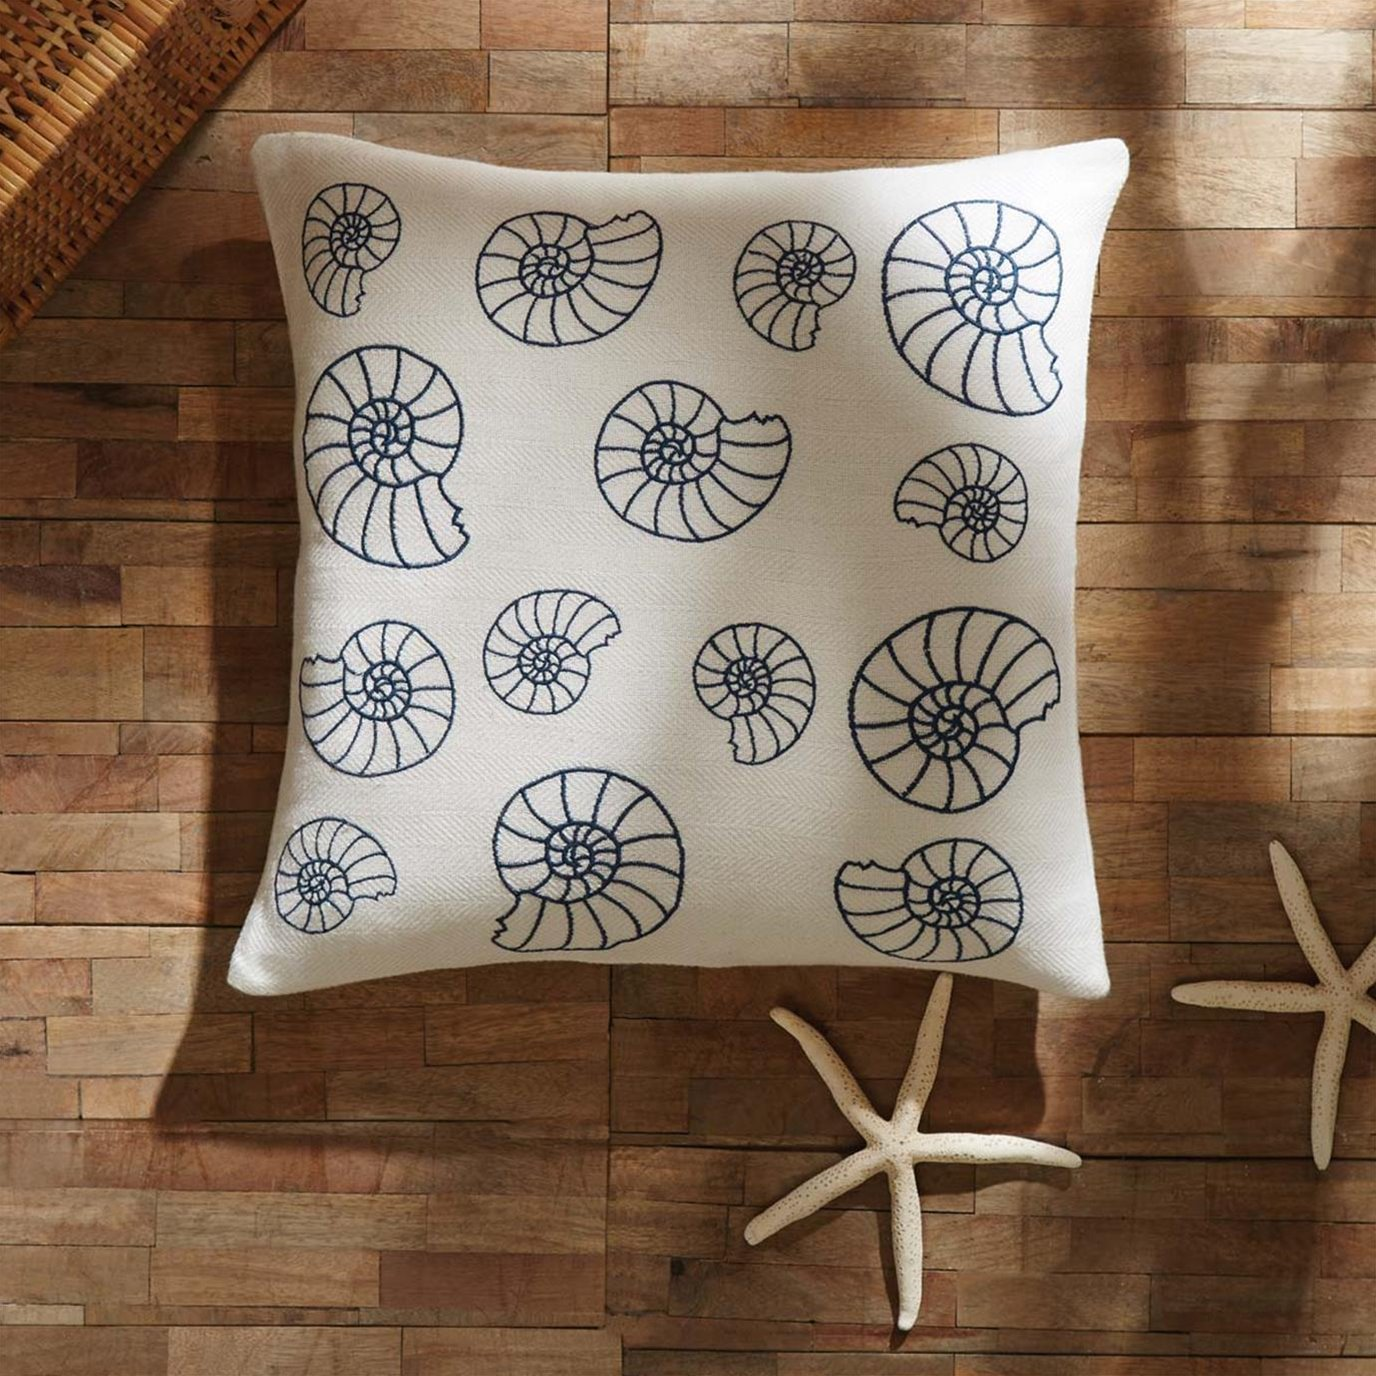 Seashell Enchantment Pillow Cover 18x18